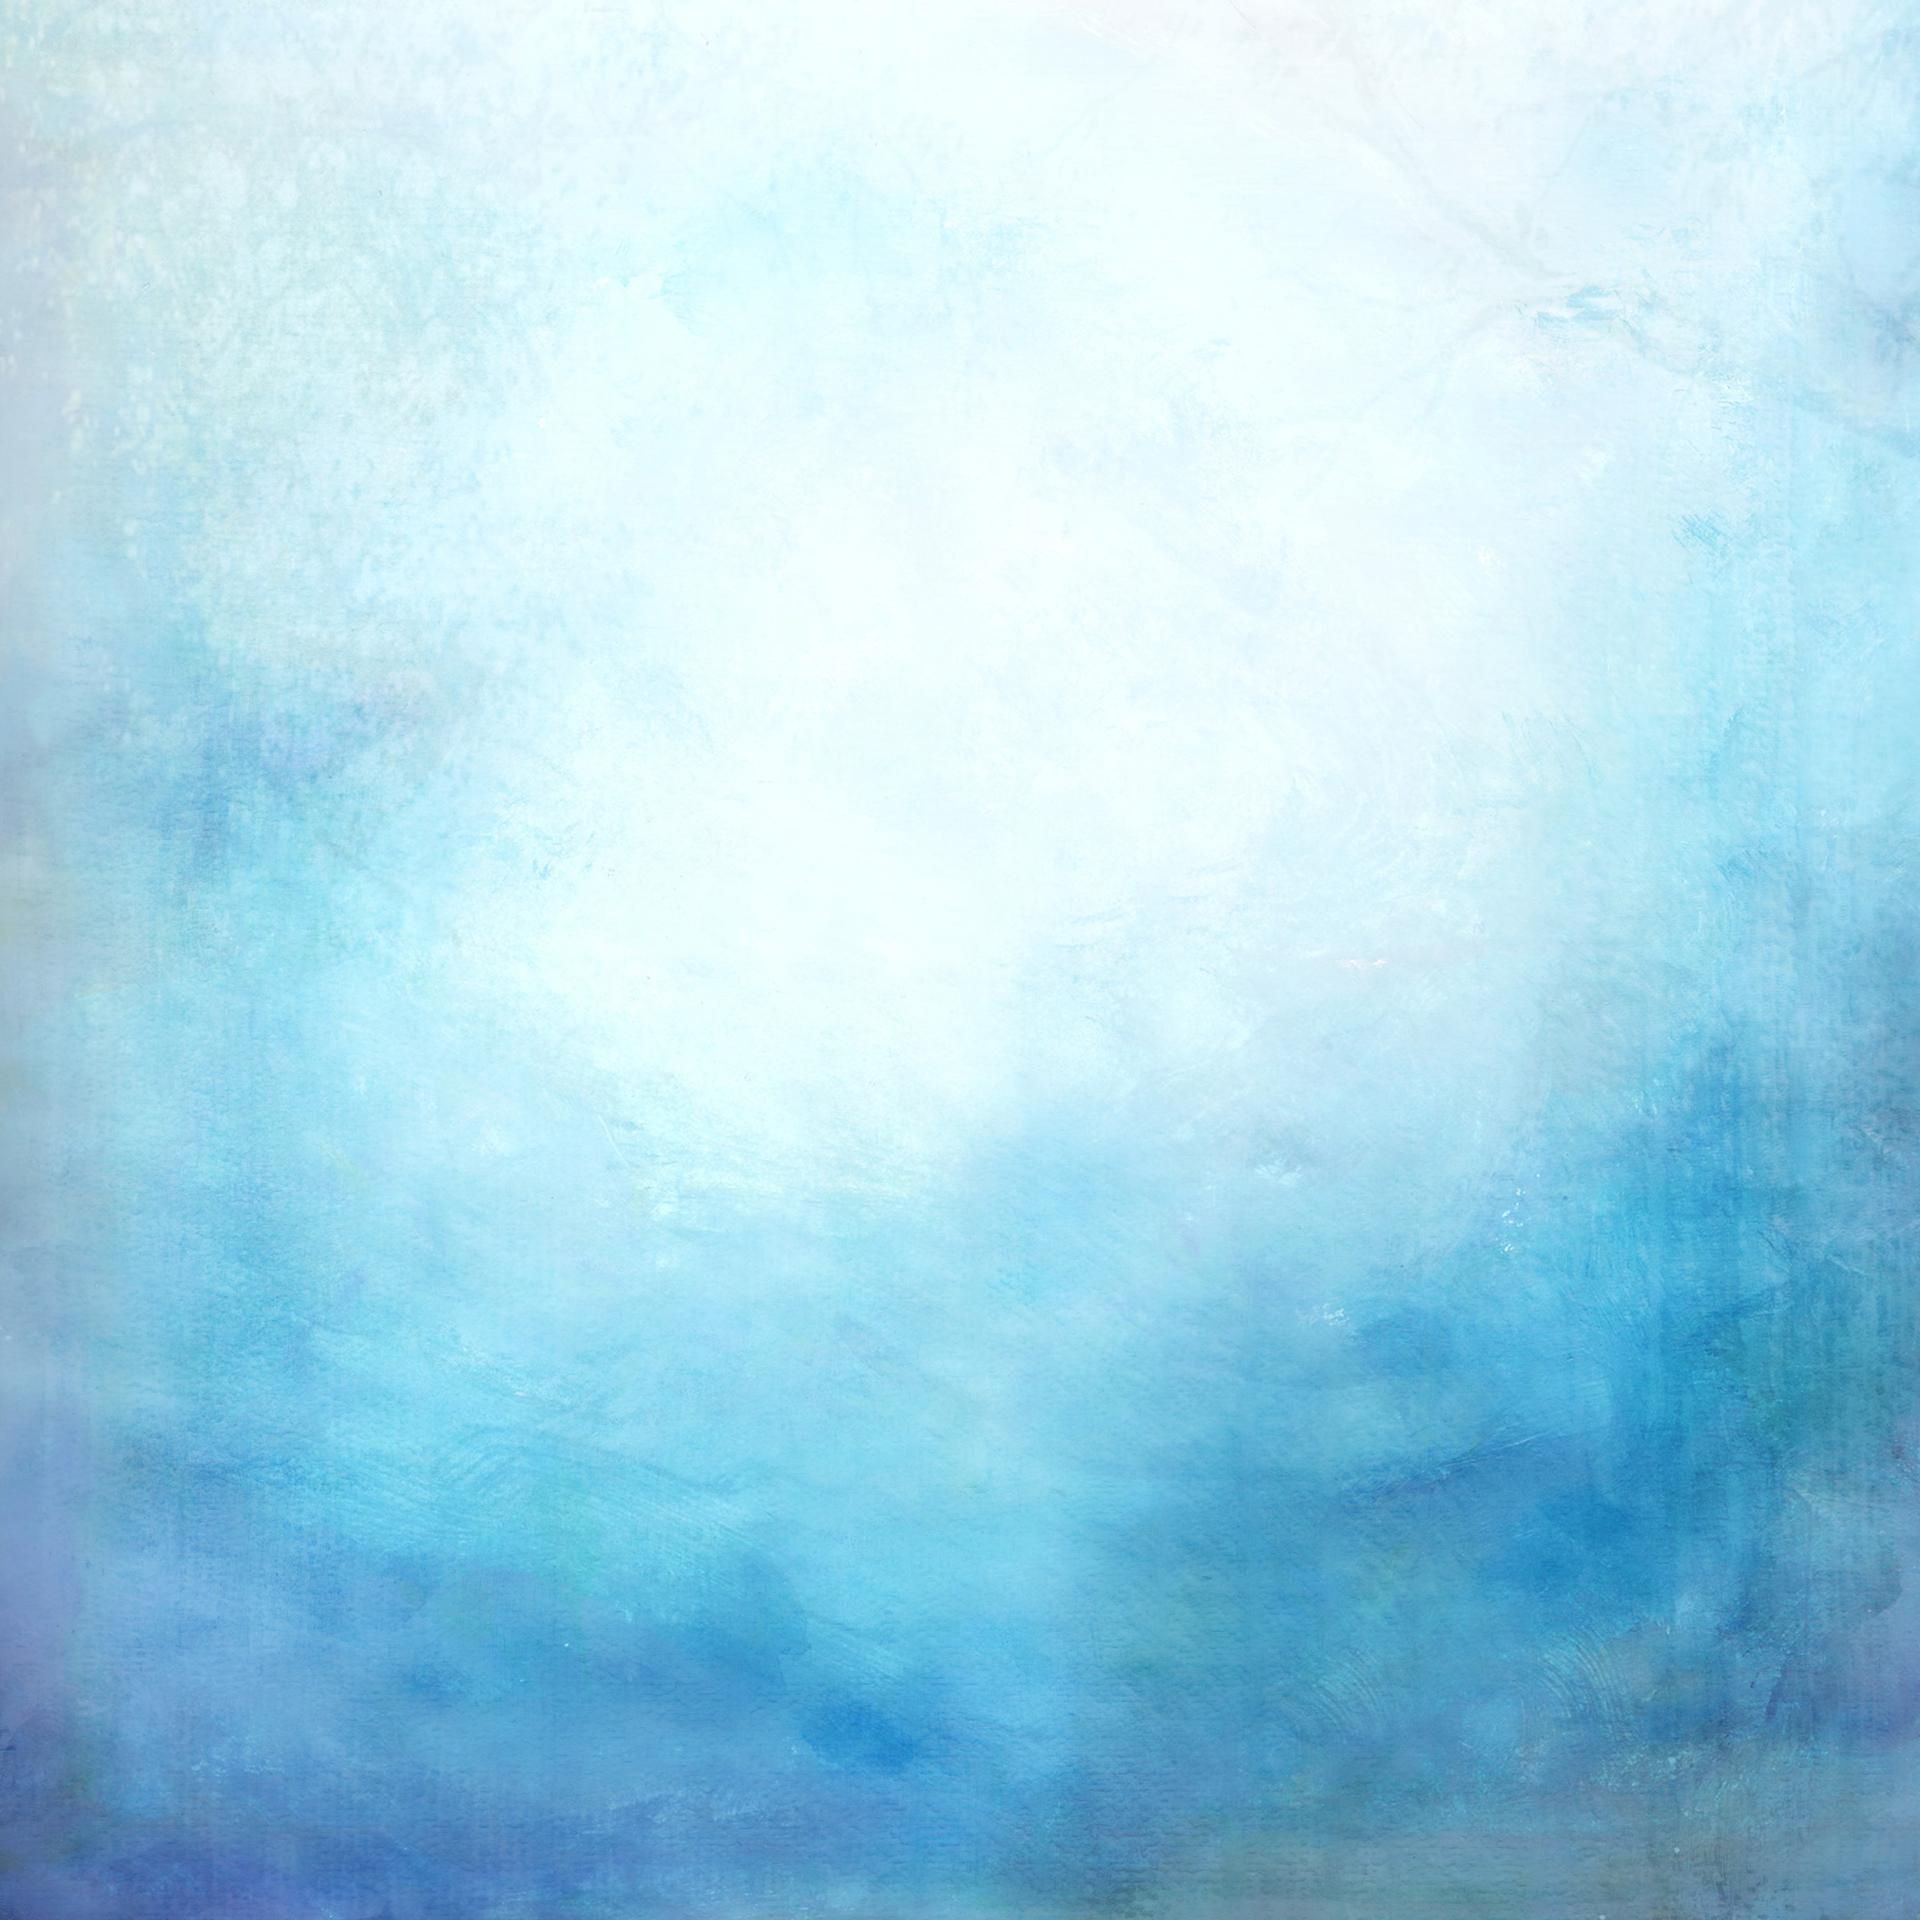 Watercolor Background Colors of Fading Aquamarine   P3Y   PARAMJI 1920x1920